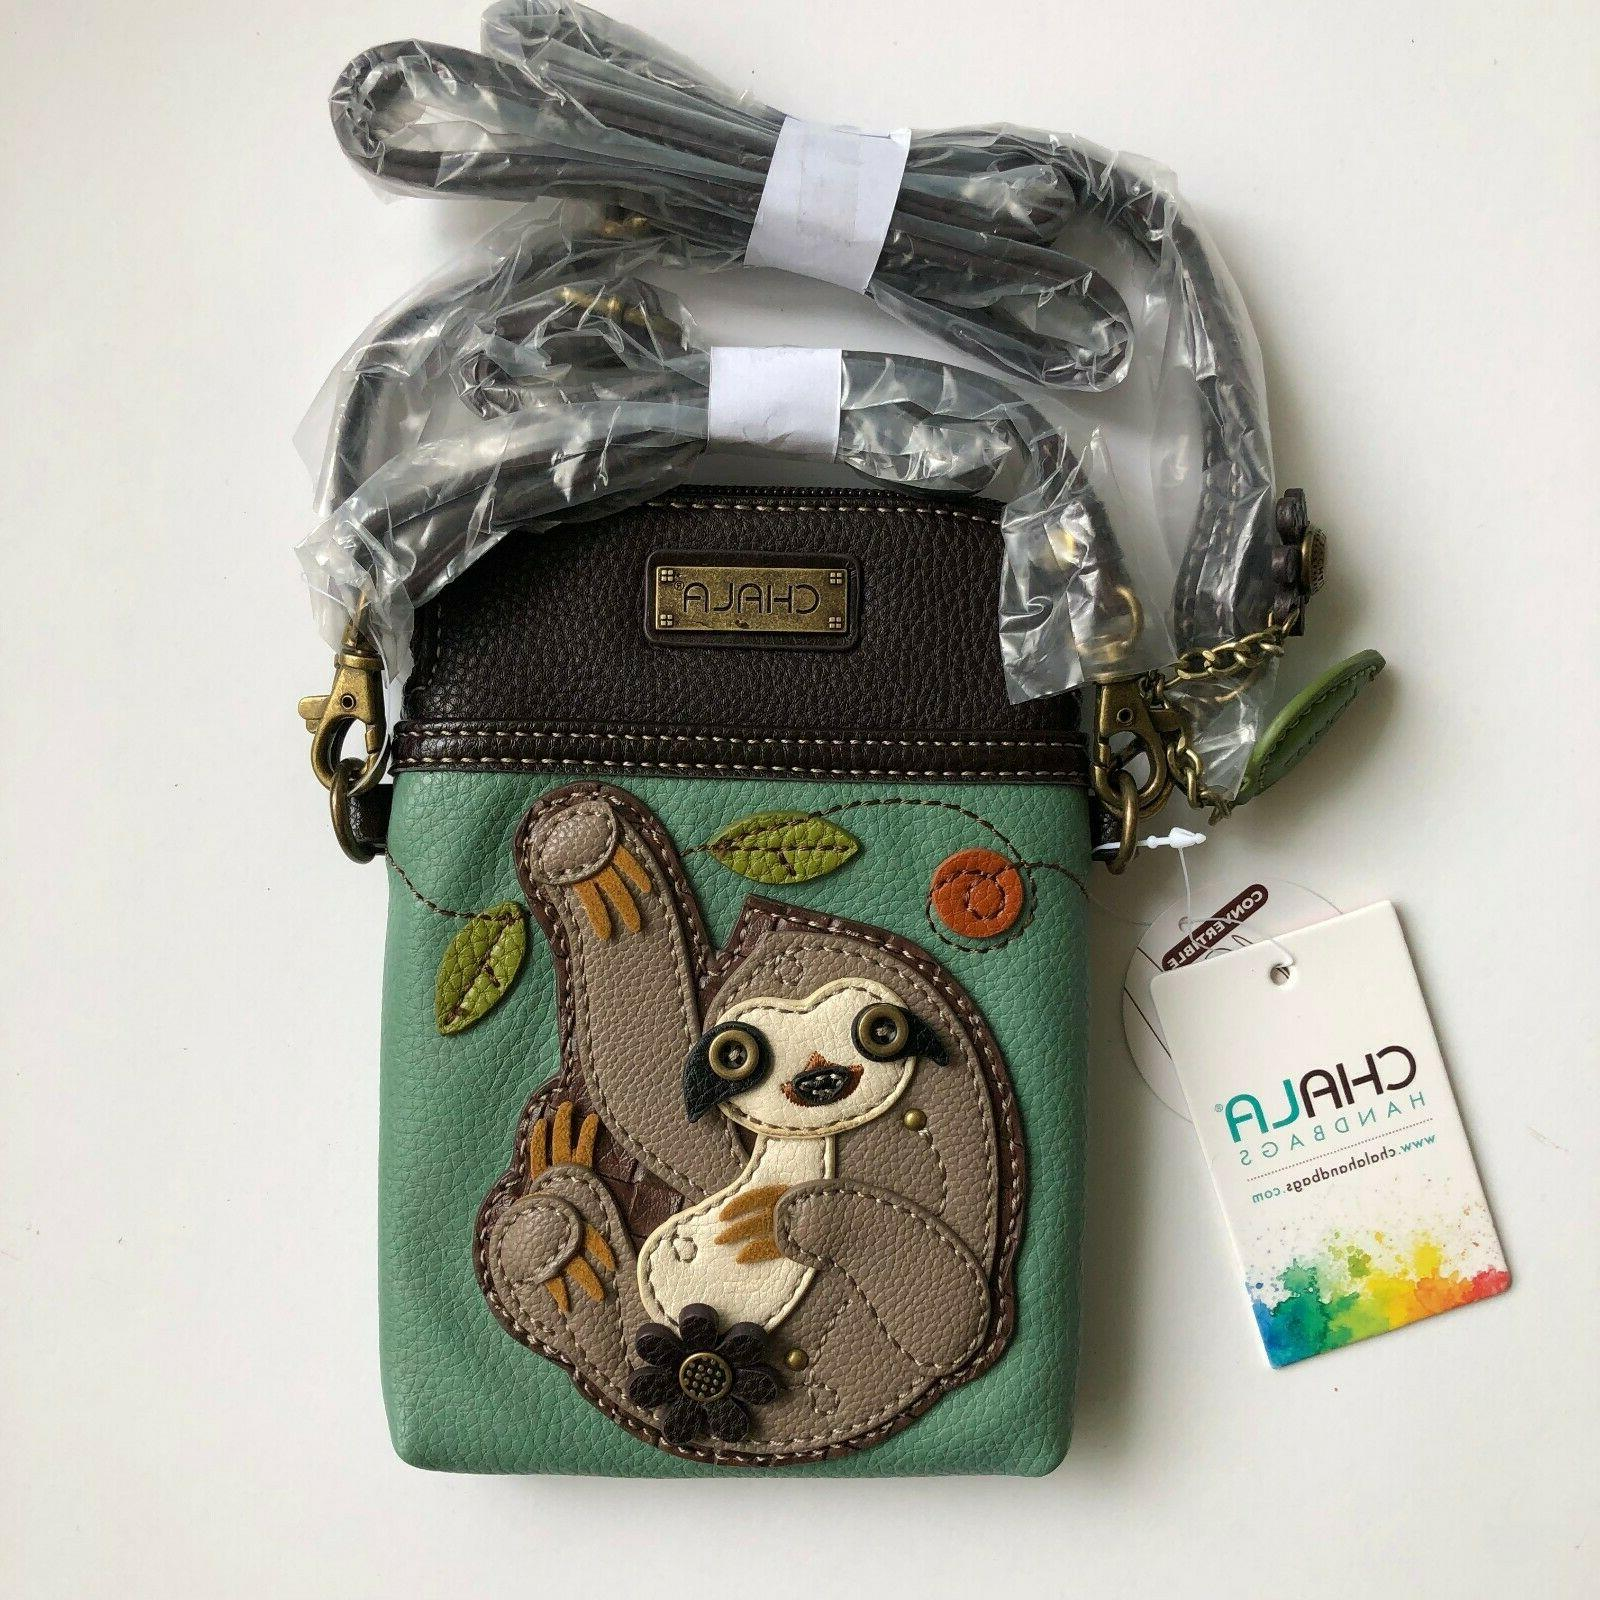 Chala Cell Phone Bag Sloth Teal Adjustable